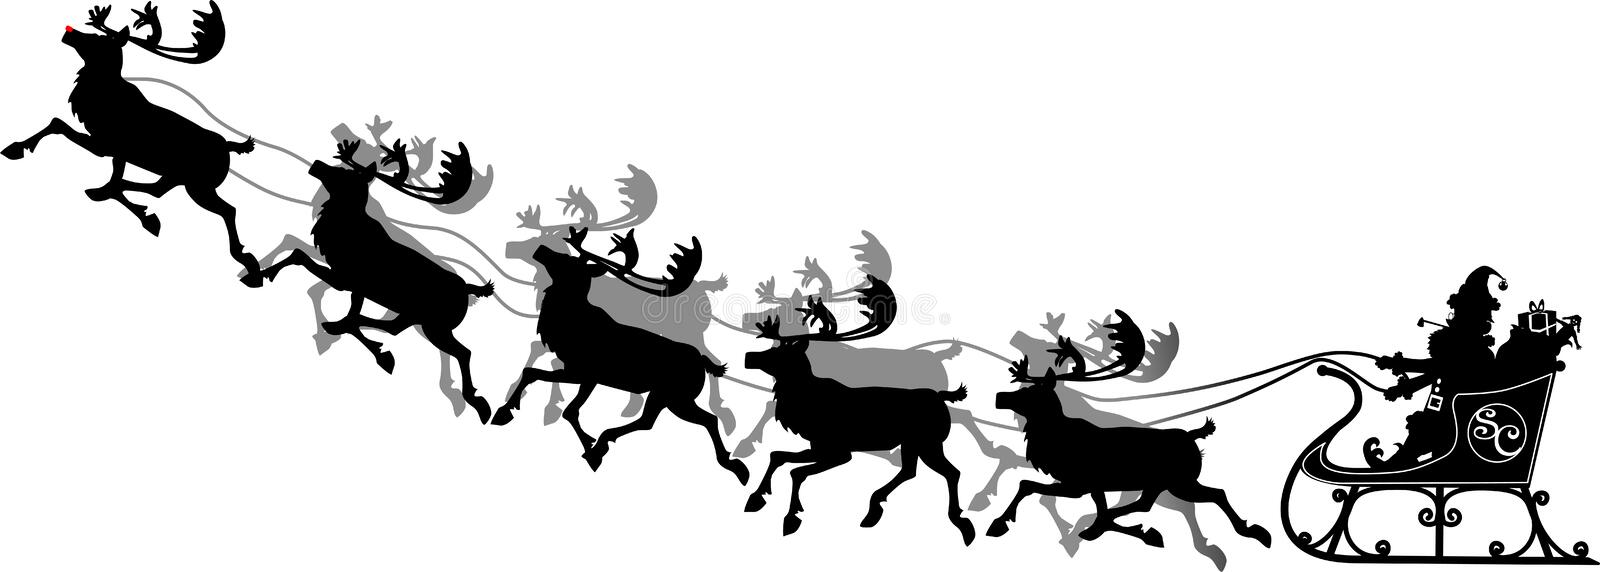 Santa_liftoff. Raster silhouette graphic depicting Santa in his sleigh with his reindeer